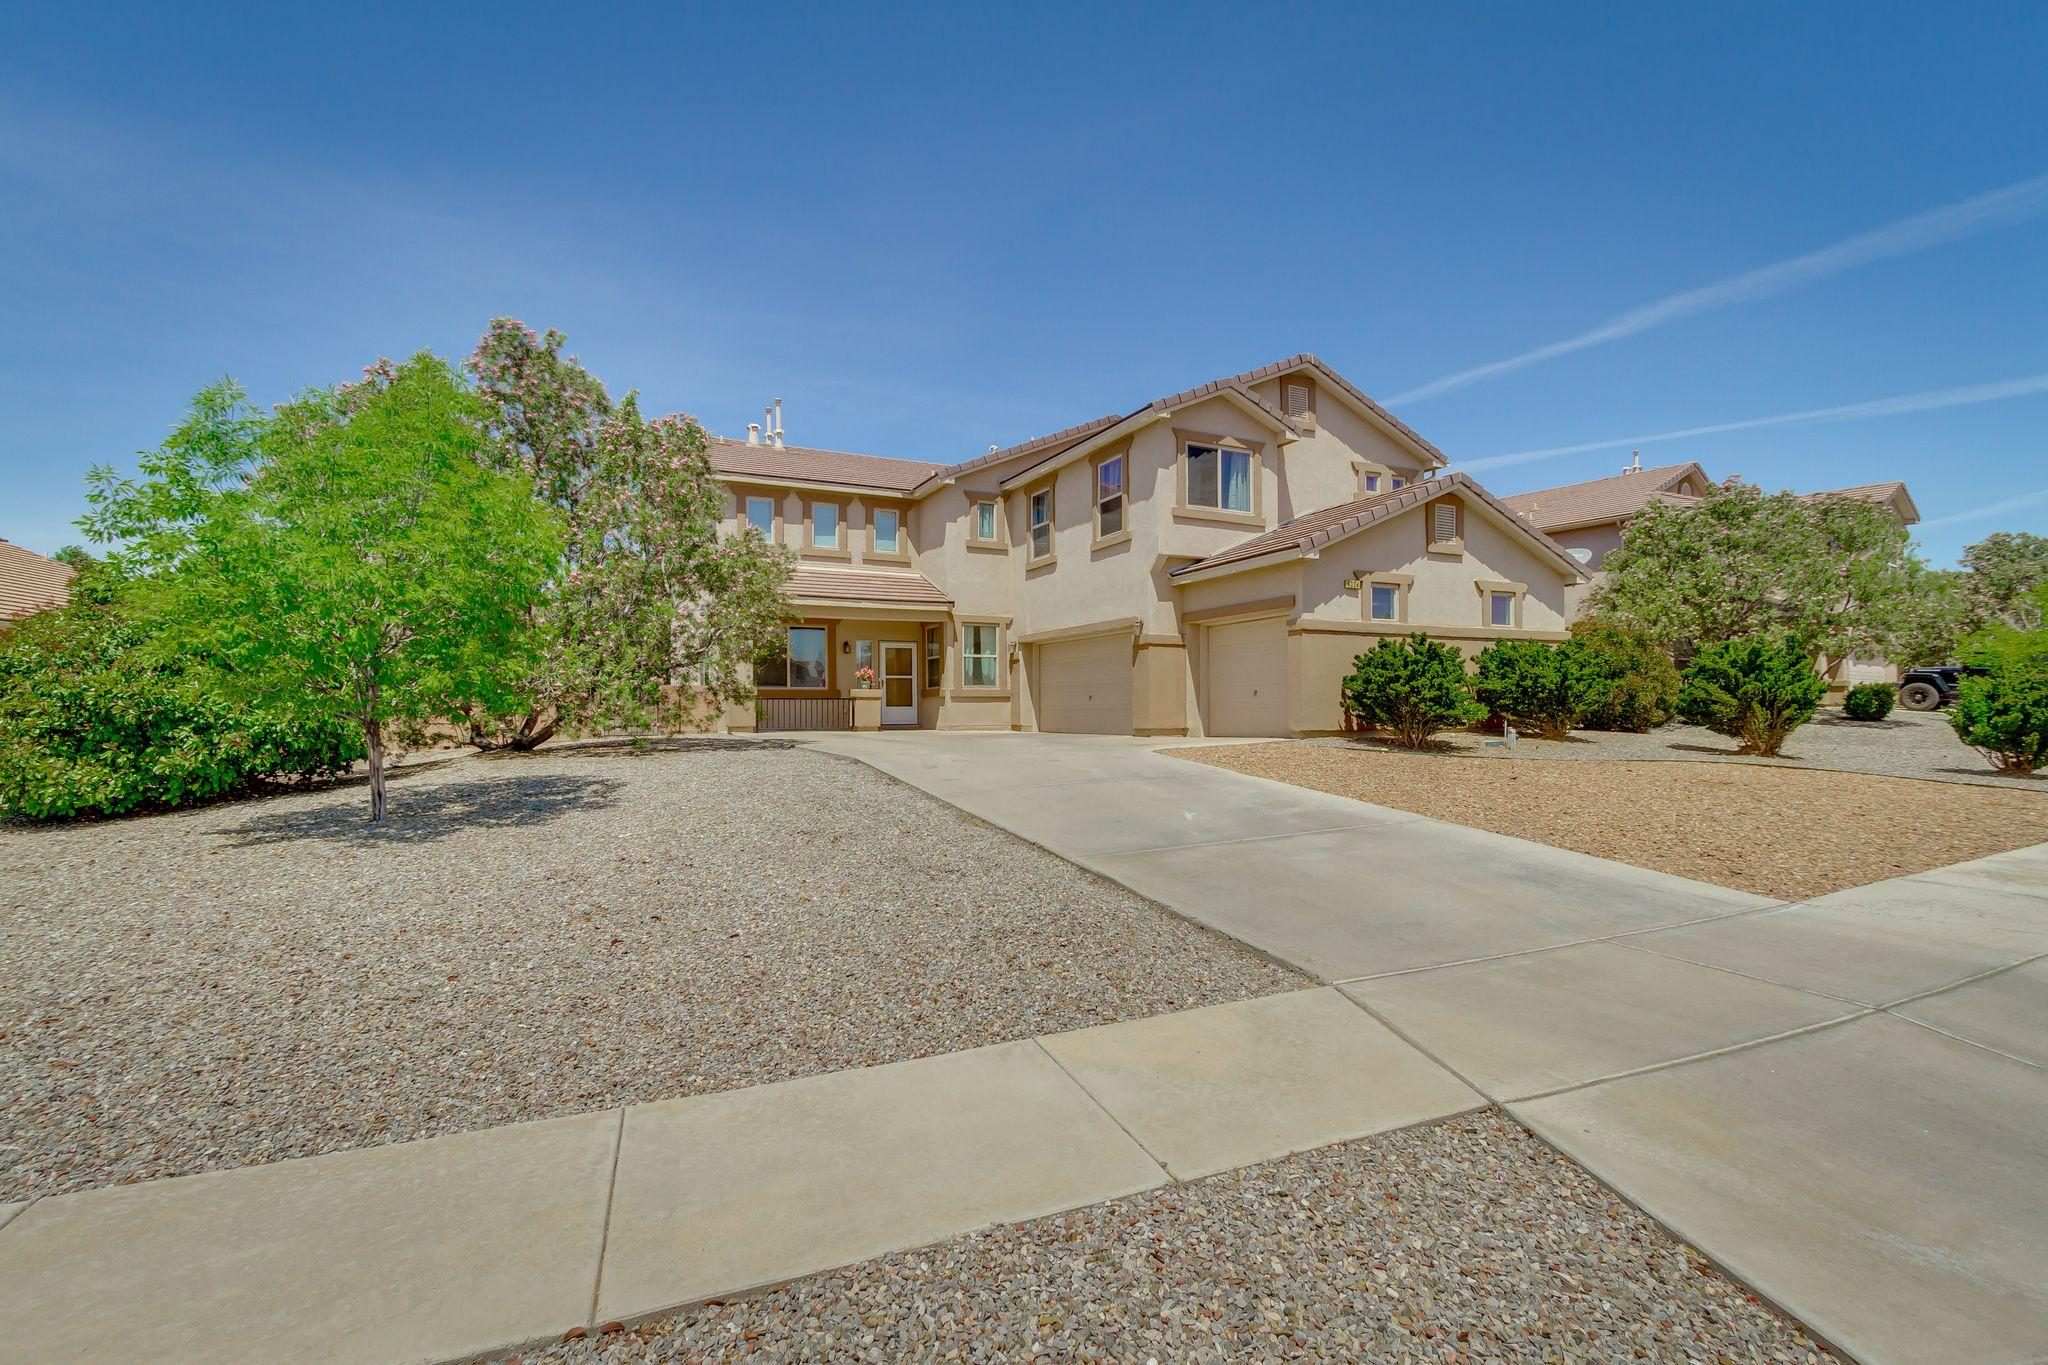 4004 CHOLLA Drive NE, Rio Rancho, NM 87144 - Rio Rancho, NM real estate listing